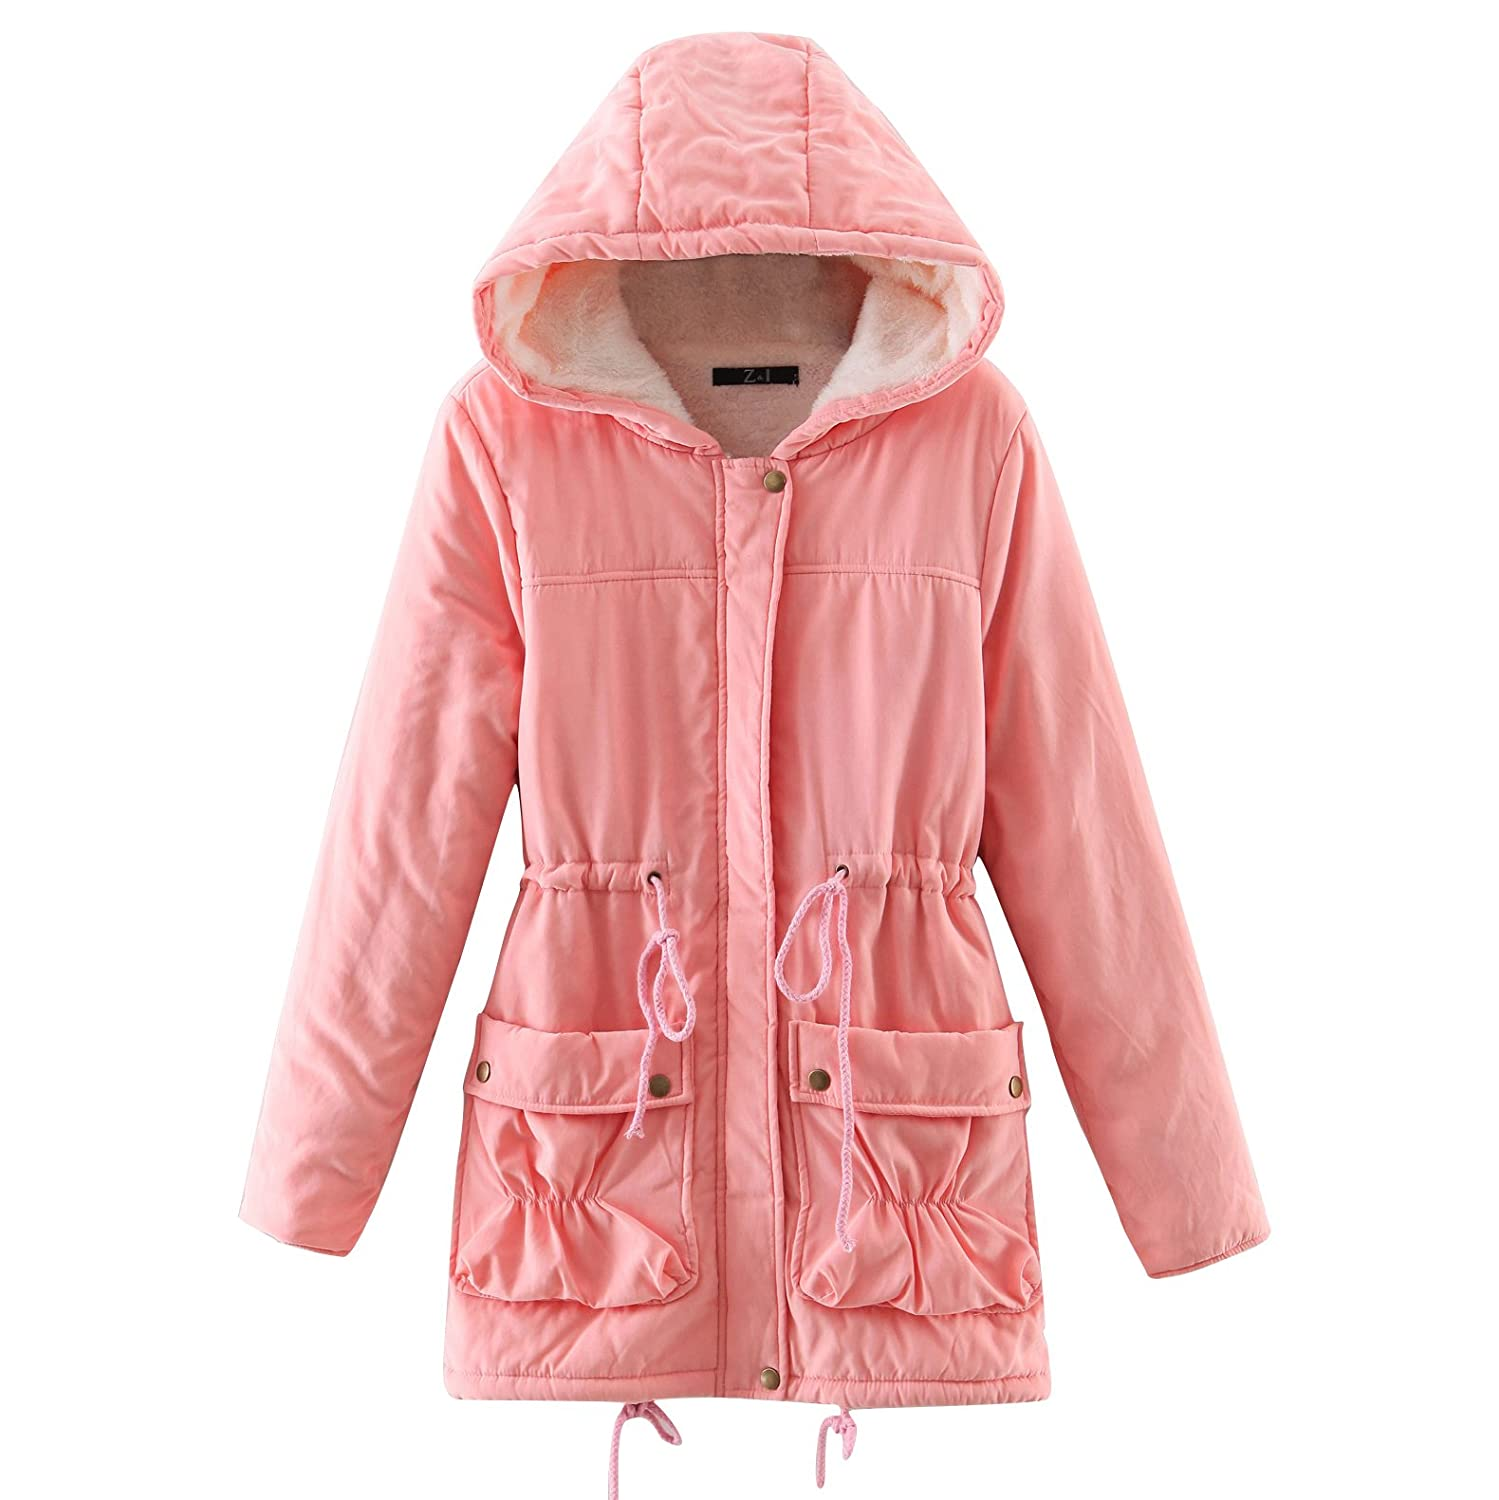 ACE SHOCK Winter Coats for Women Hooded, Faux Fur Lined Parka Jackets with Belt Long Warm Black Green Pink Navy